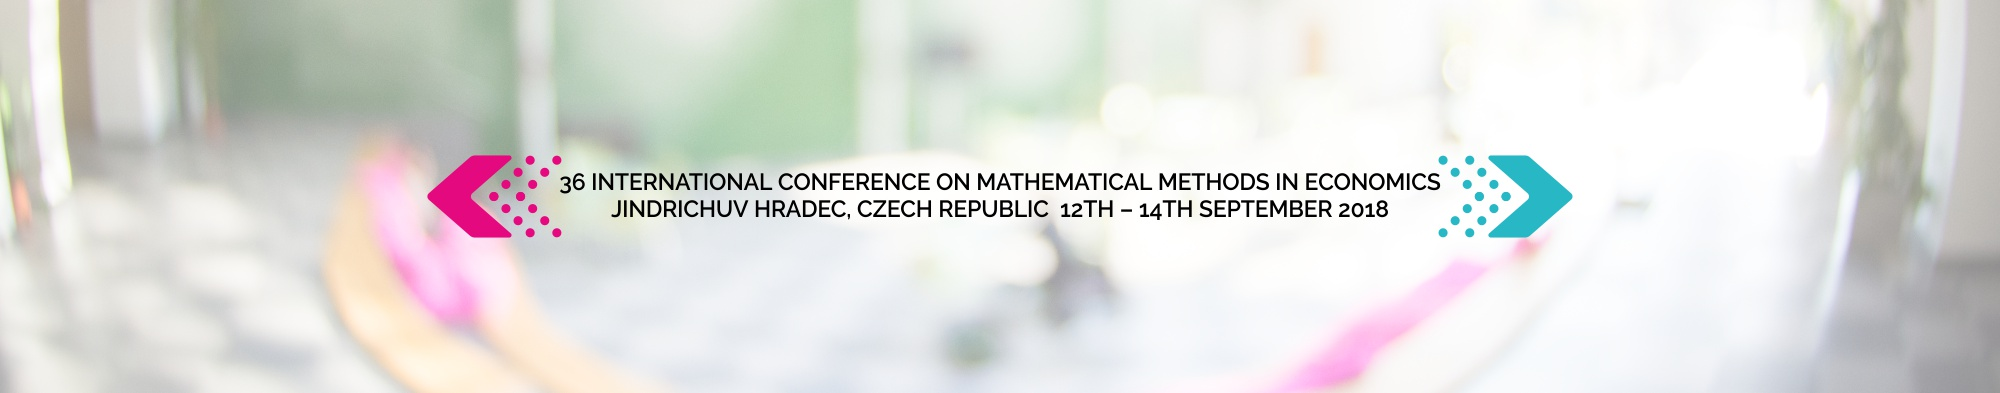 36 International Conference on Mathematical Methods in Economics Jindrichuv Hradec, Czech Republic 11th – 14th September 2018